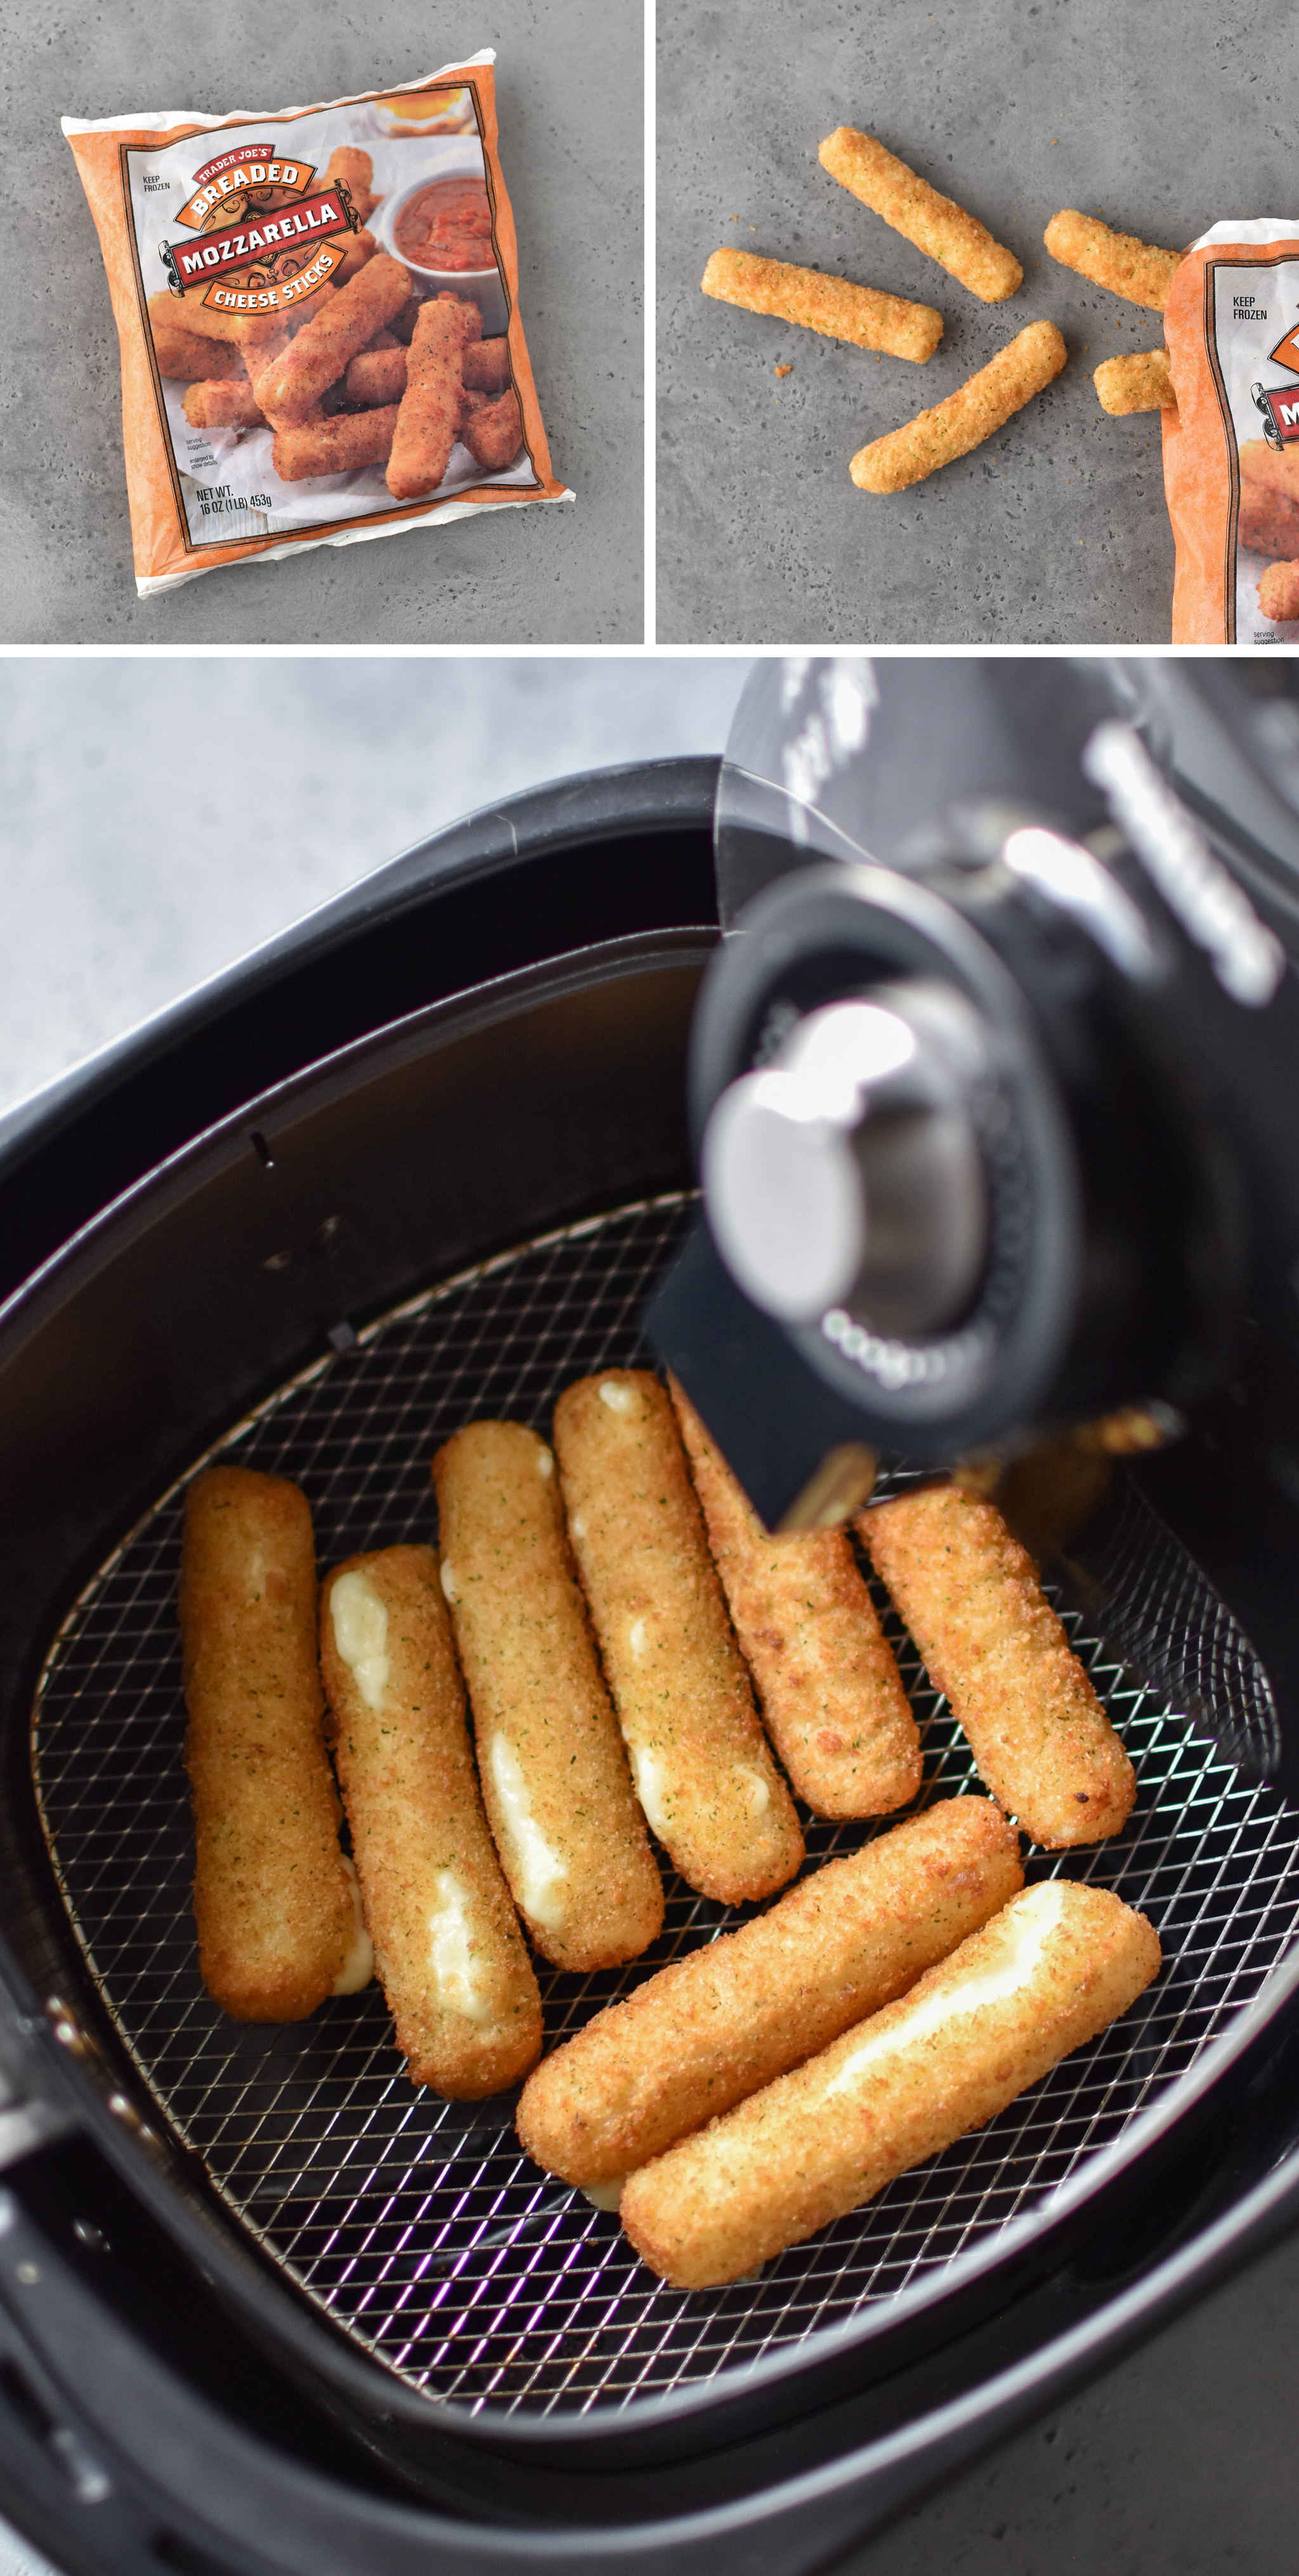 Mozzarella sticks made in the air fryer